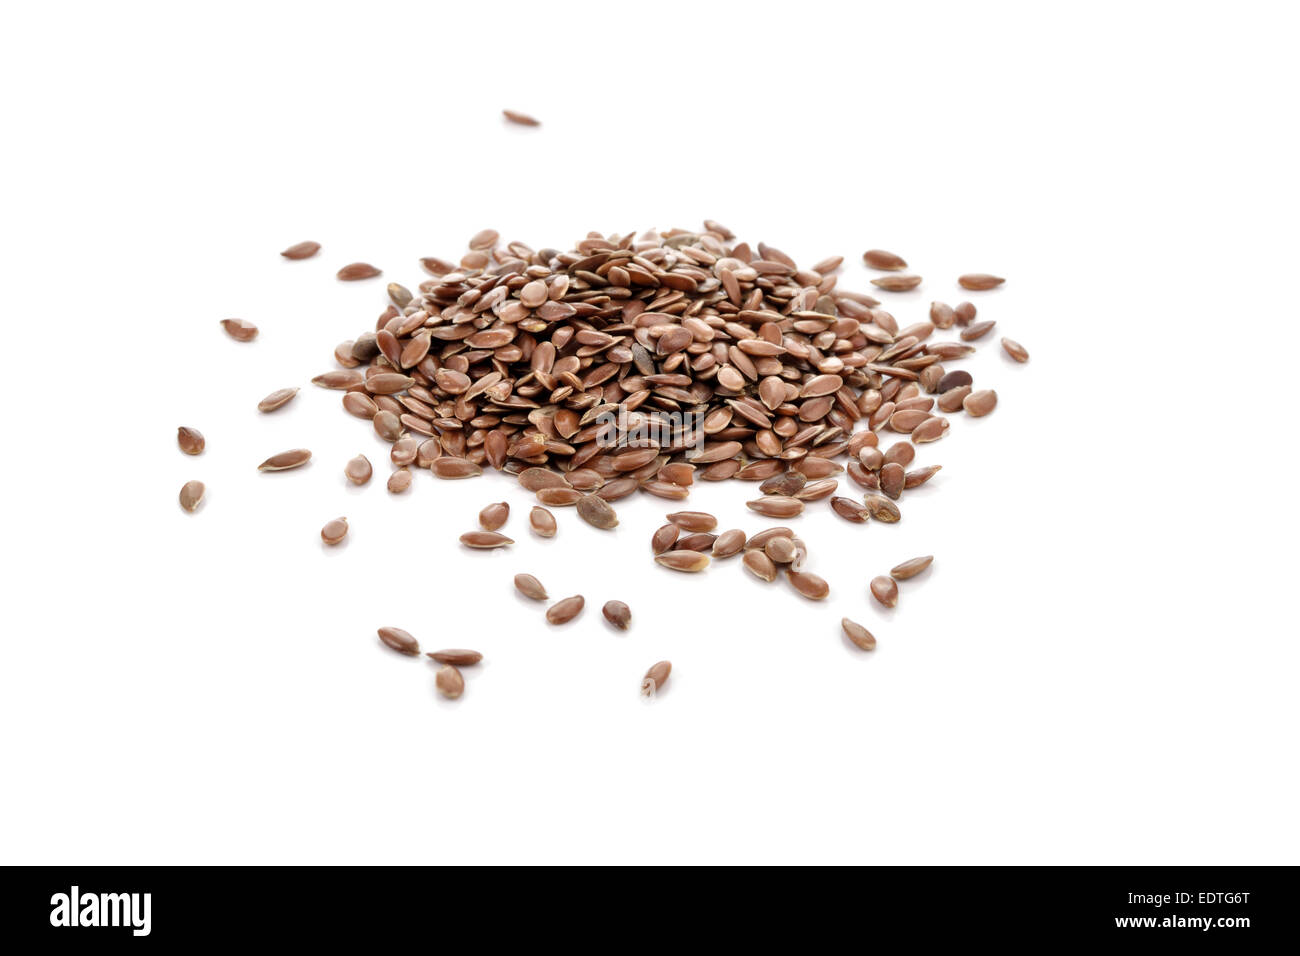 Pile of brown flax seeds isolated on white background. Flax seeds are rich in omega-3 fatty acid. - Stock Image